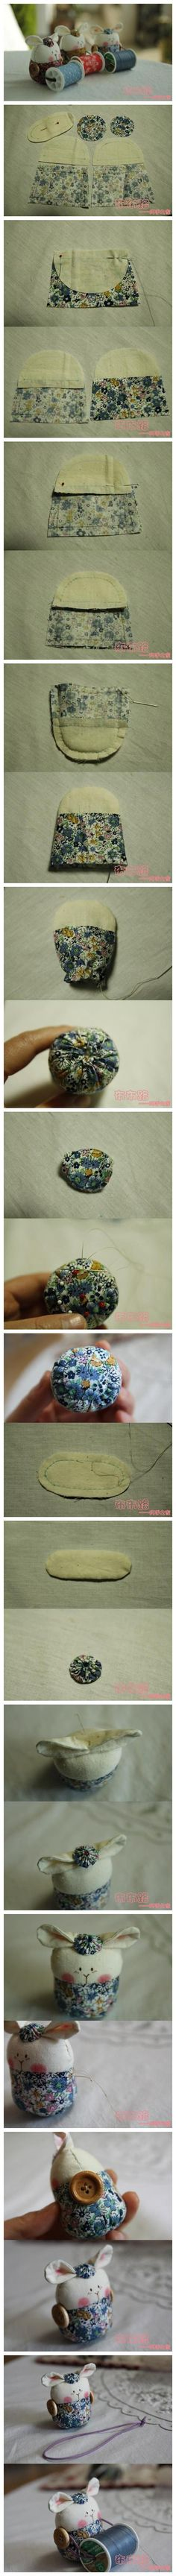 pincushion and thread cddy